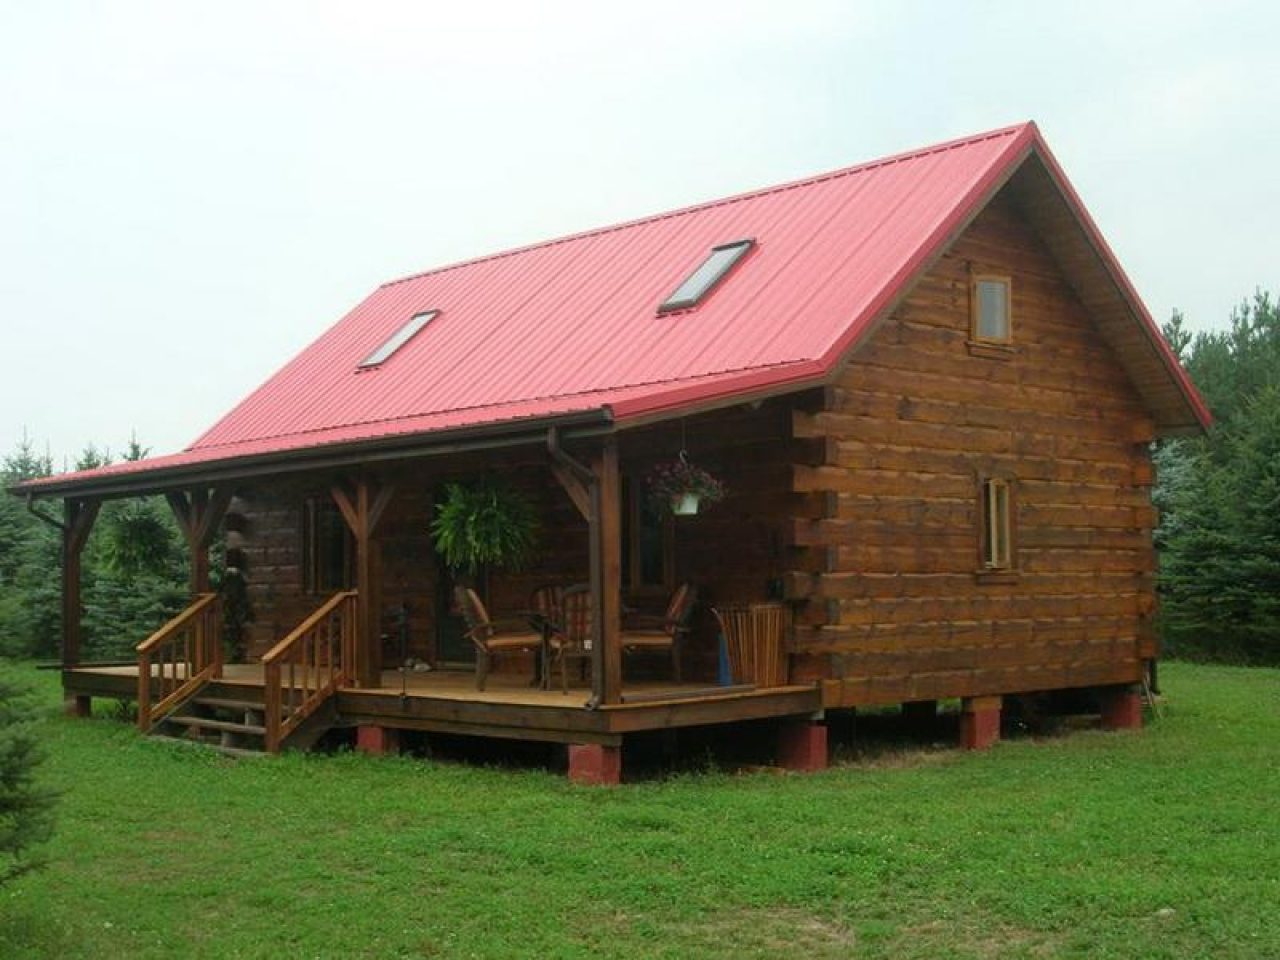 Small Cabin Plan Build Yourself Small Cabin Building Plans: Small Log Cabin Home House Plans Small Log Cabins With